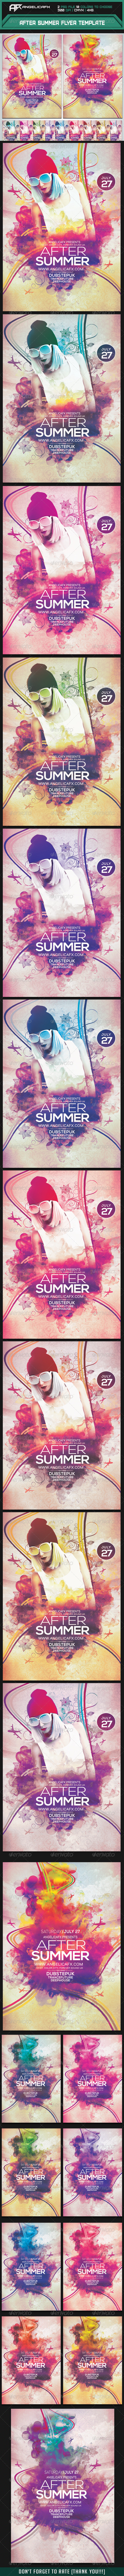 After Summer Flyer Poster Template